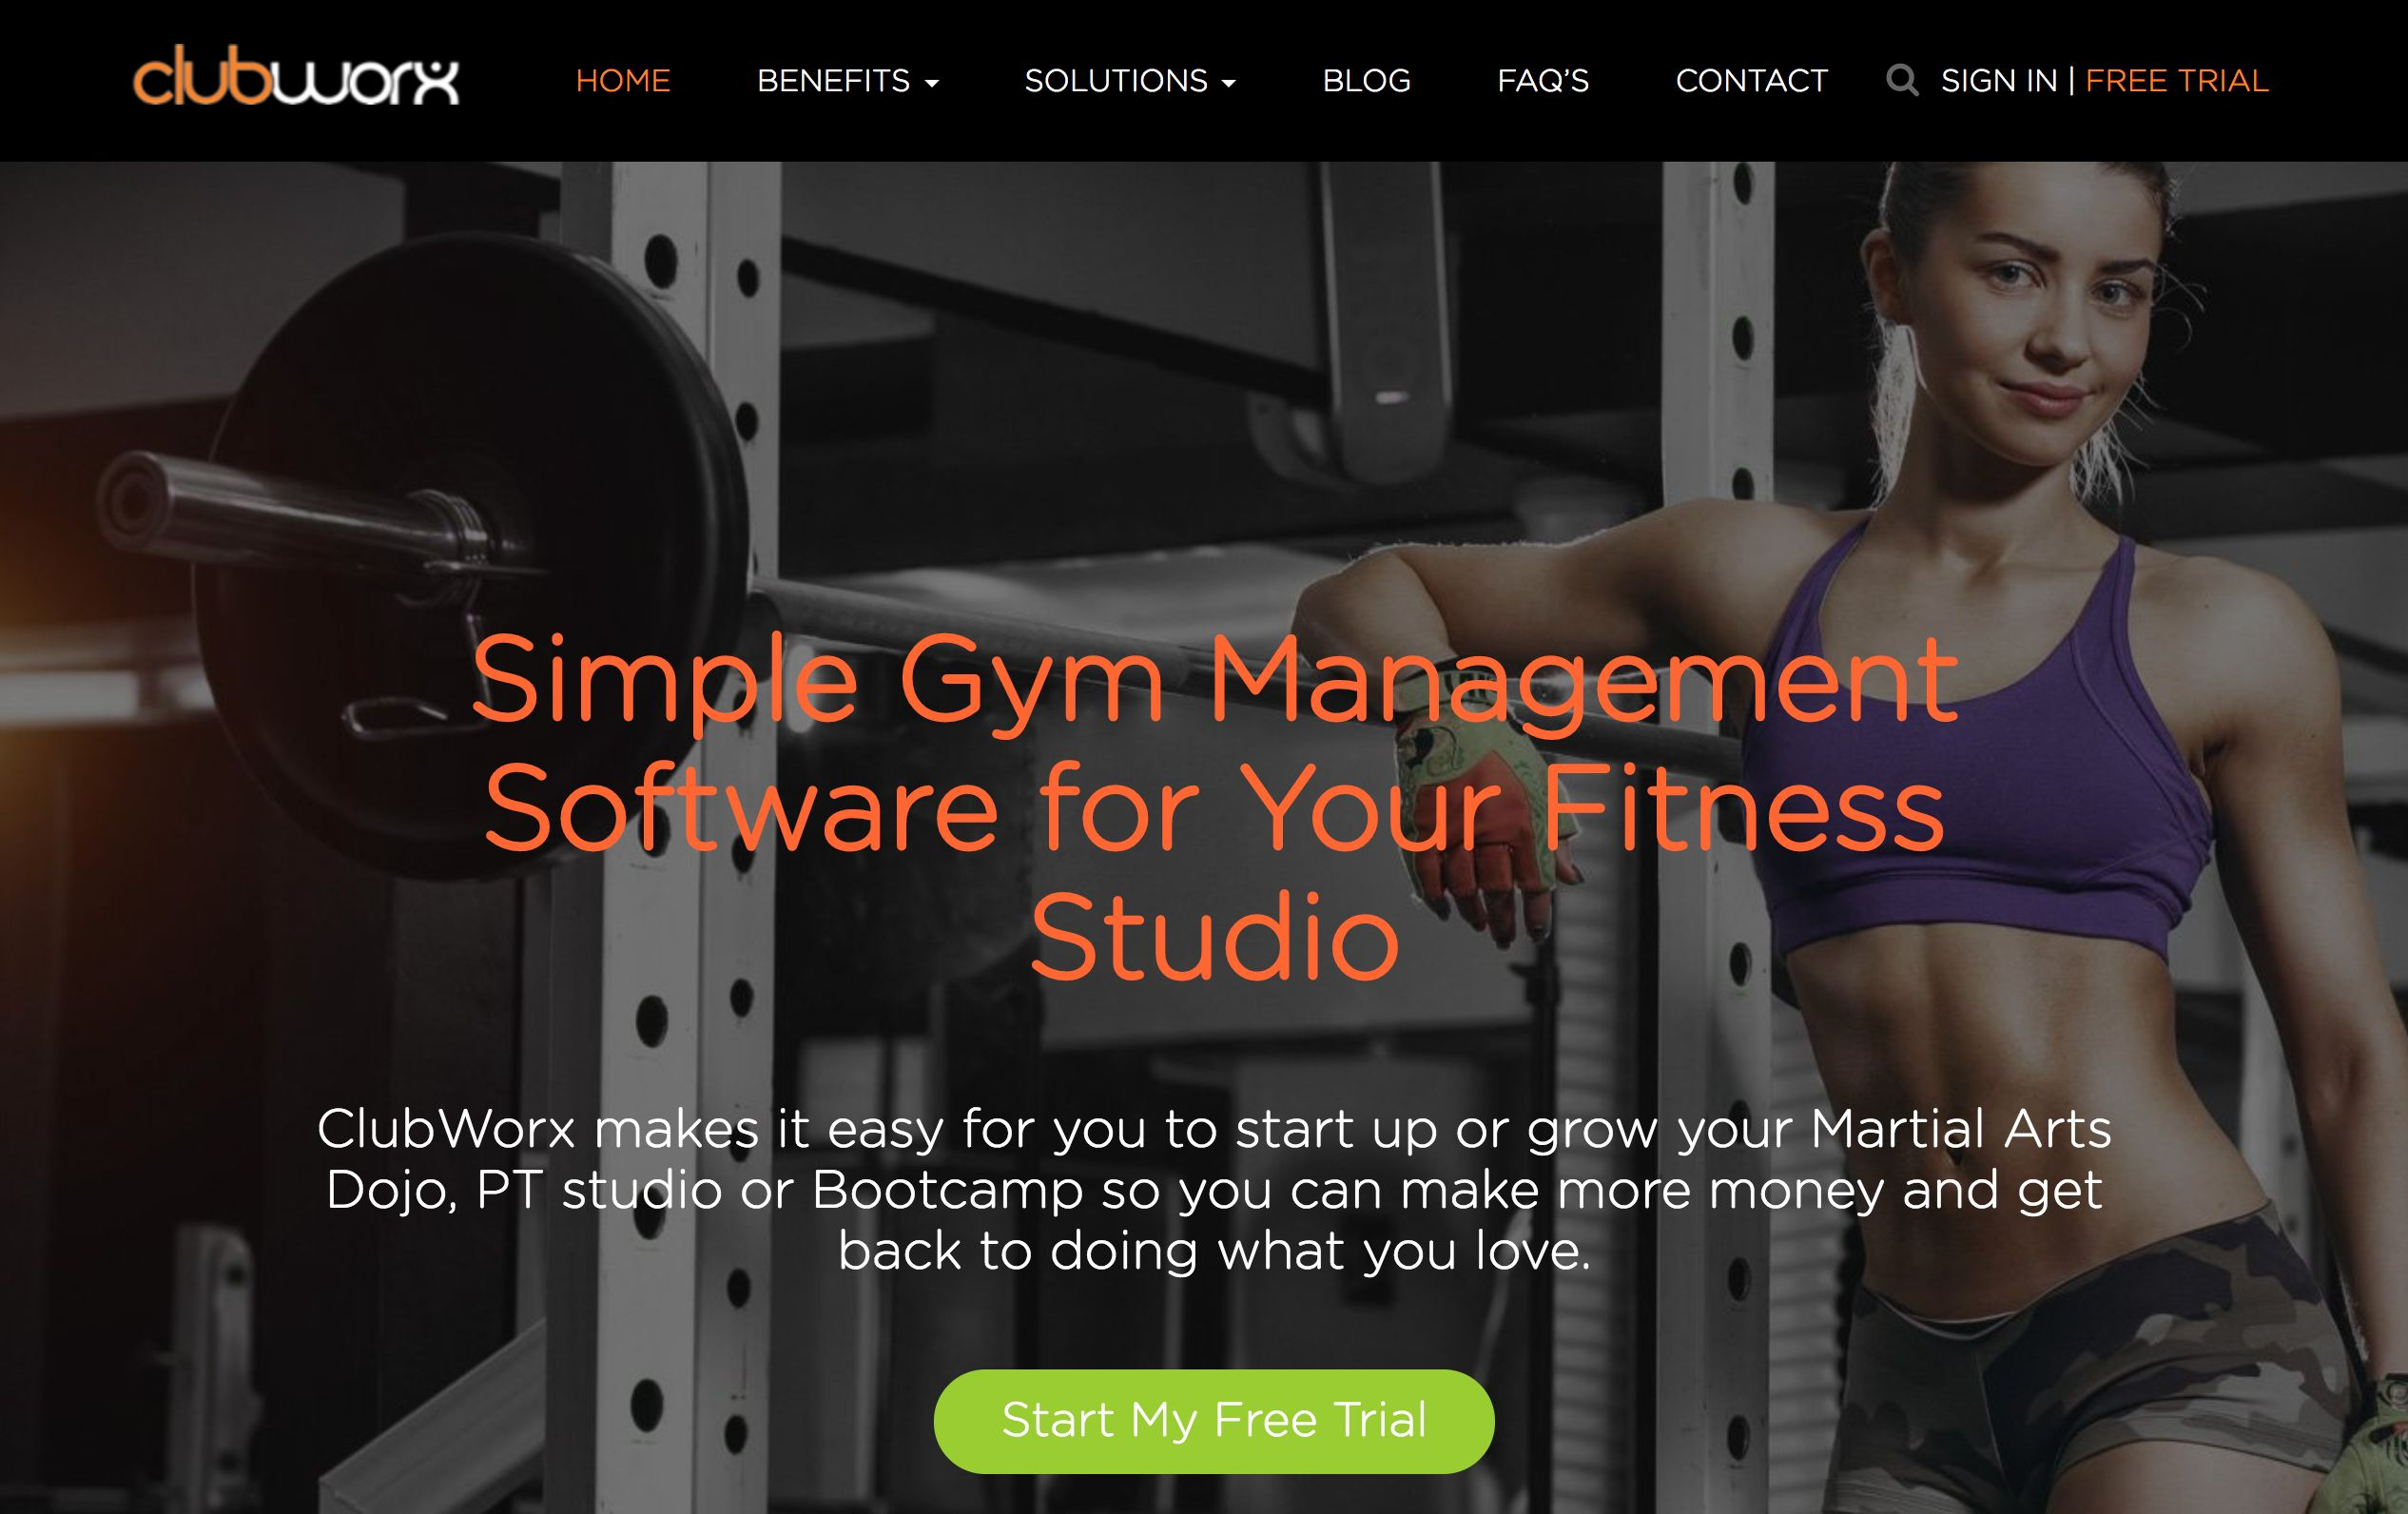 Clubworx home page